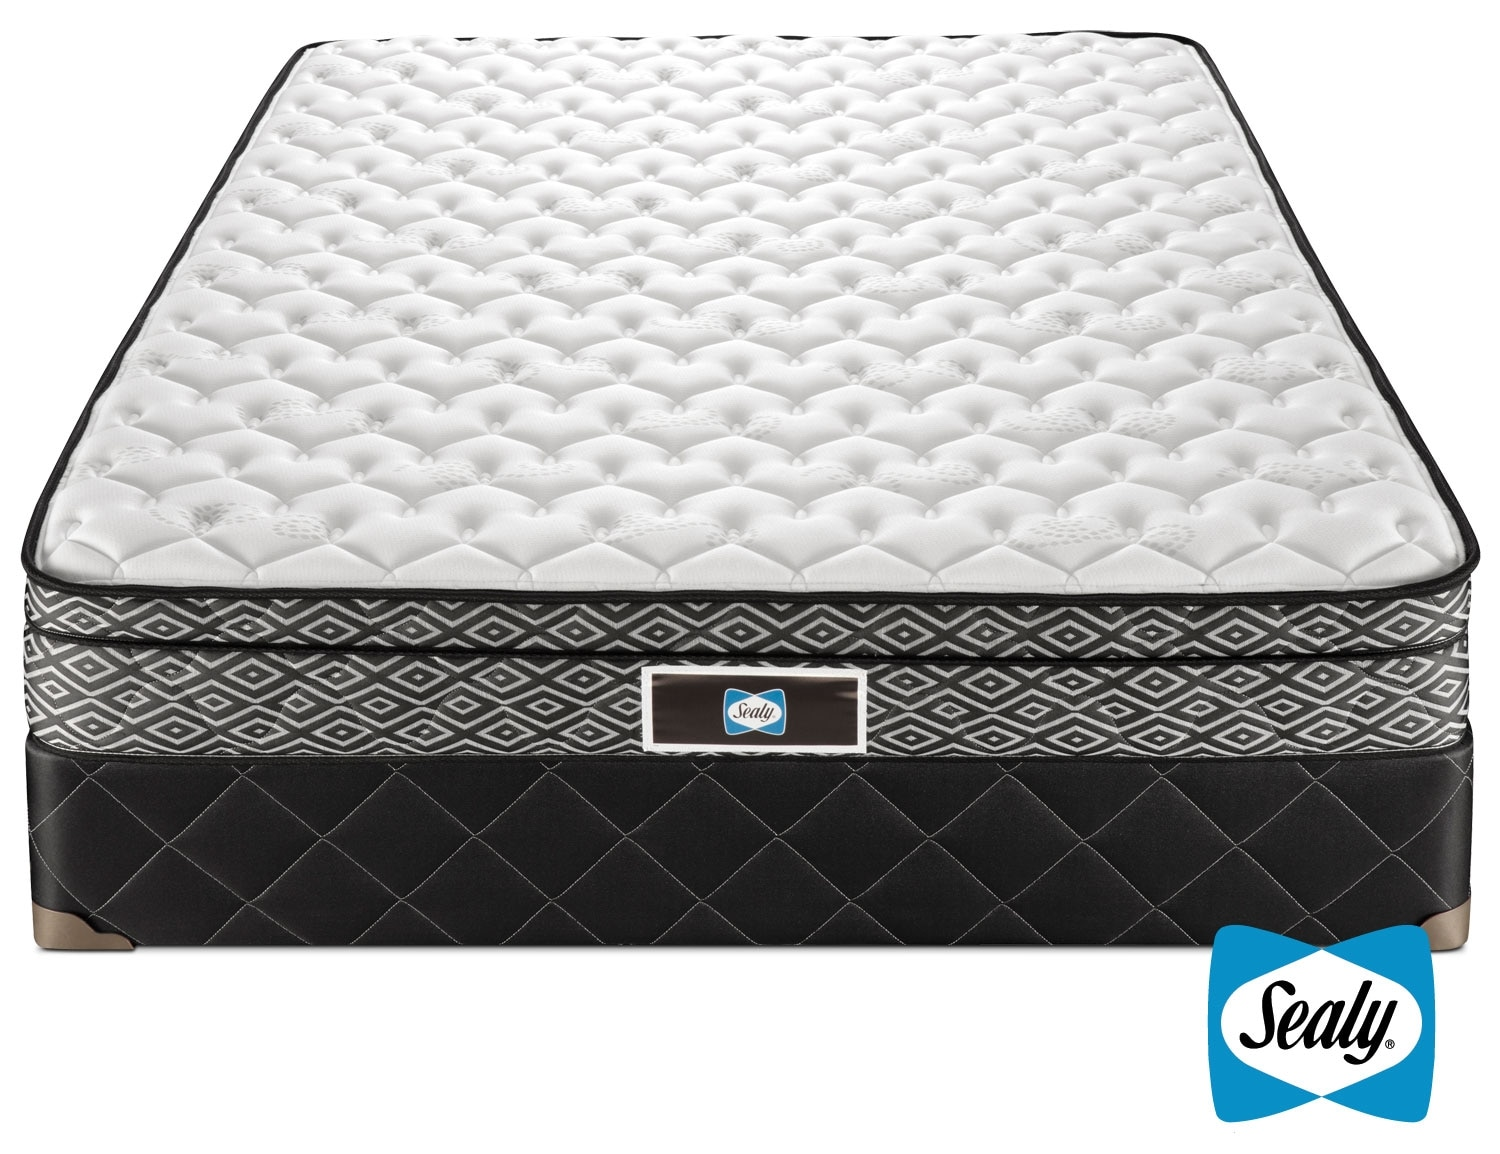 [Sealy Tale Queen Mattress/Boxspring Set]